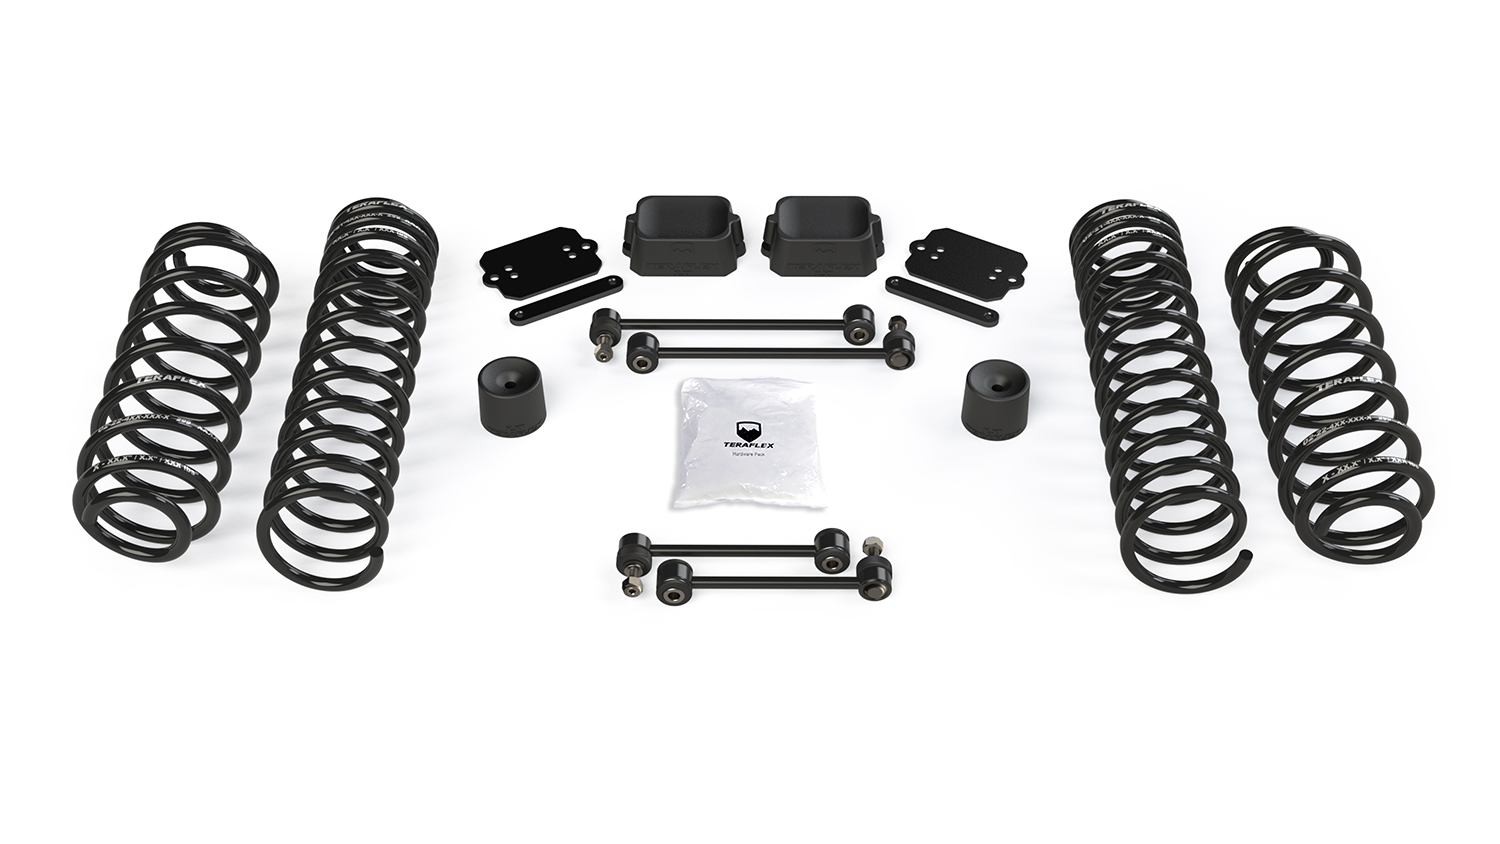 Teraflex 2.5in Coil Spring Base Lift Kit - No Shocks - JL 2Dr